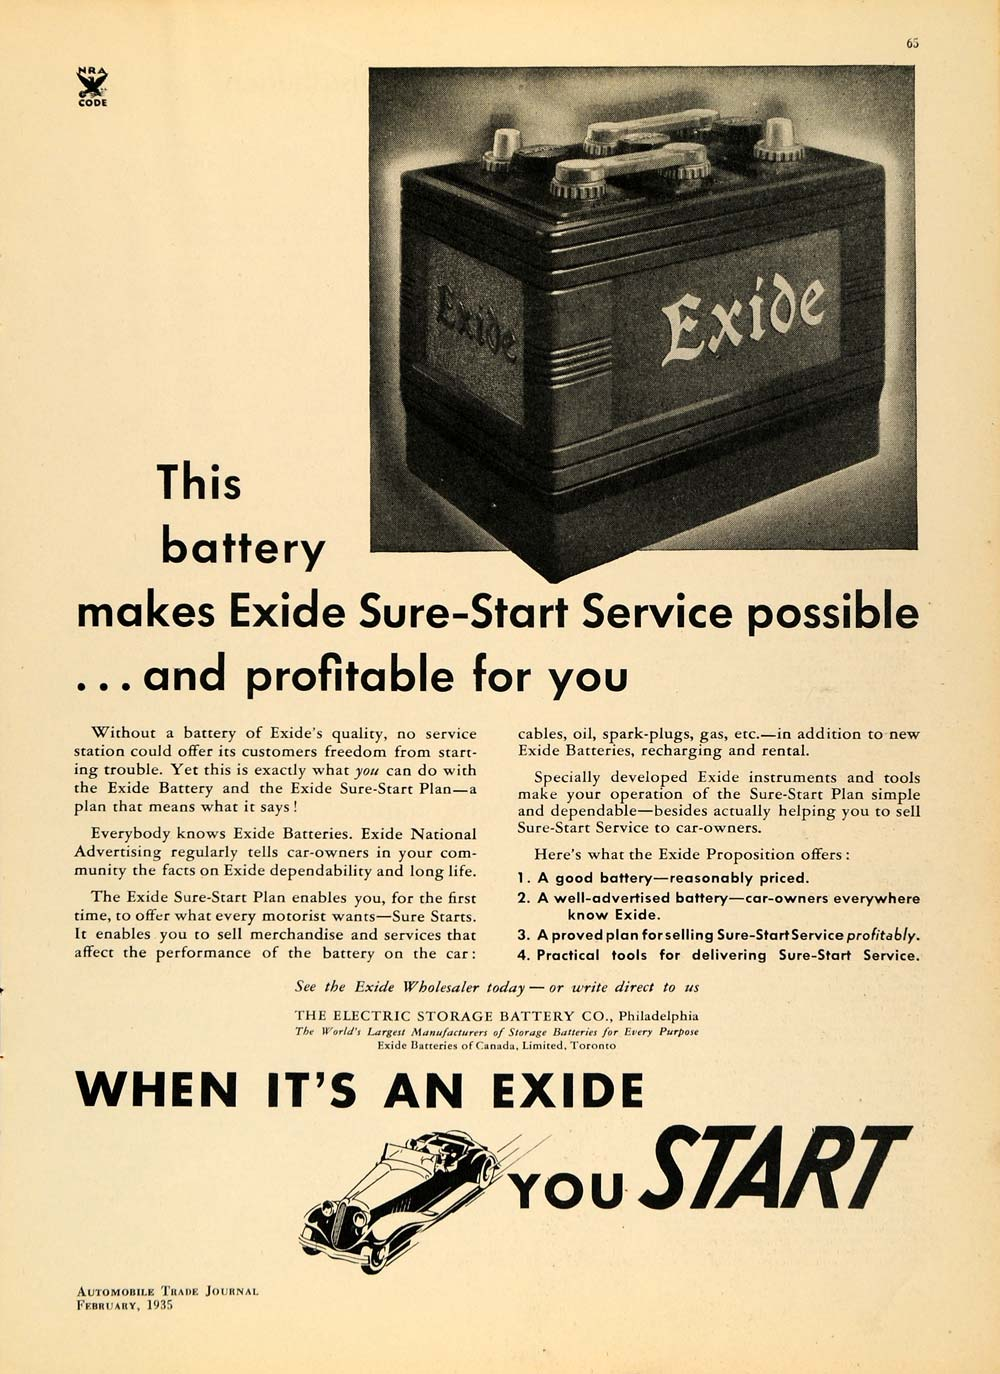 1935 Ad Electric Storage Battery Company Exide Car Battery ATJ1